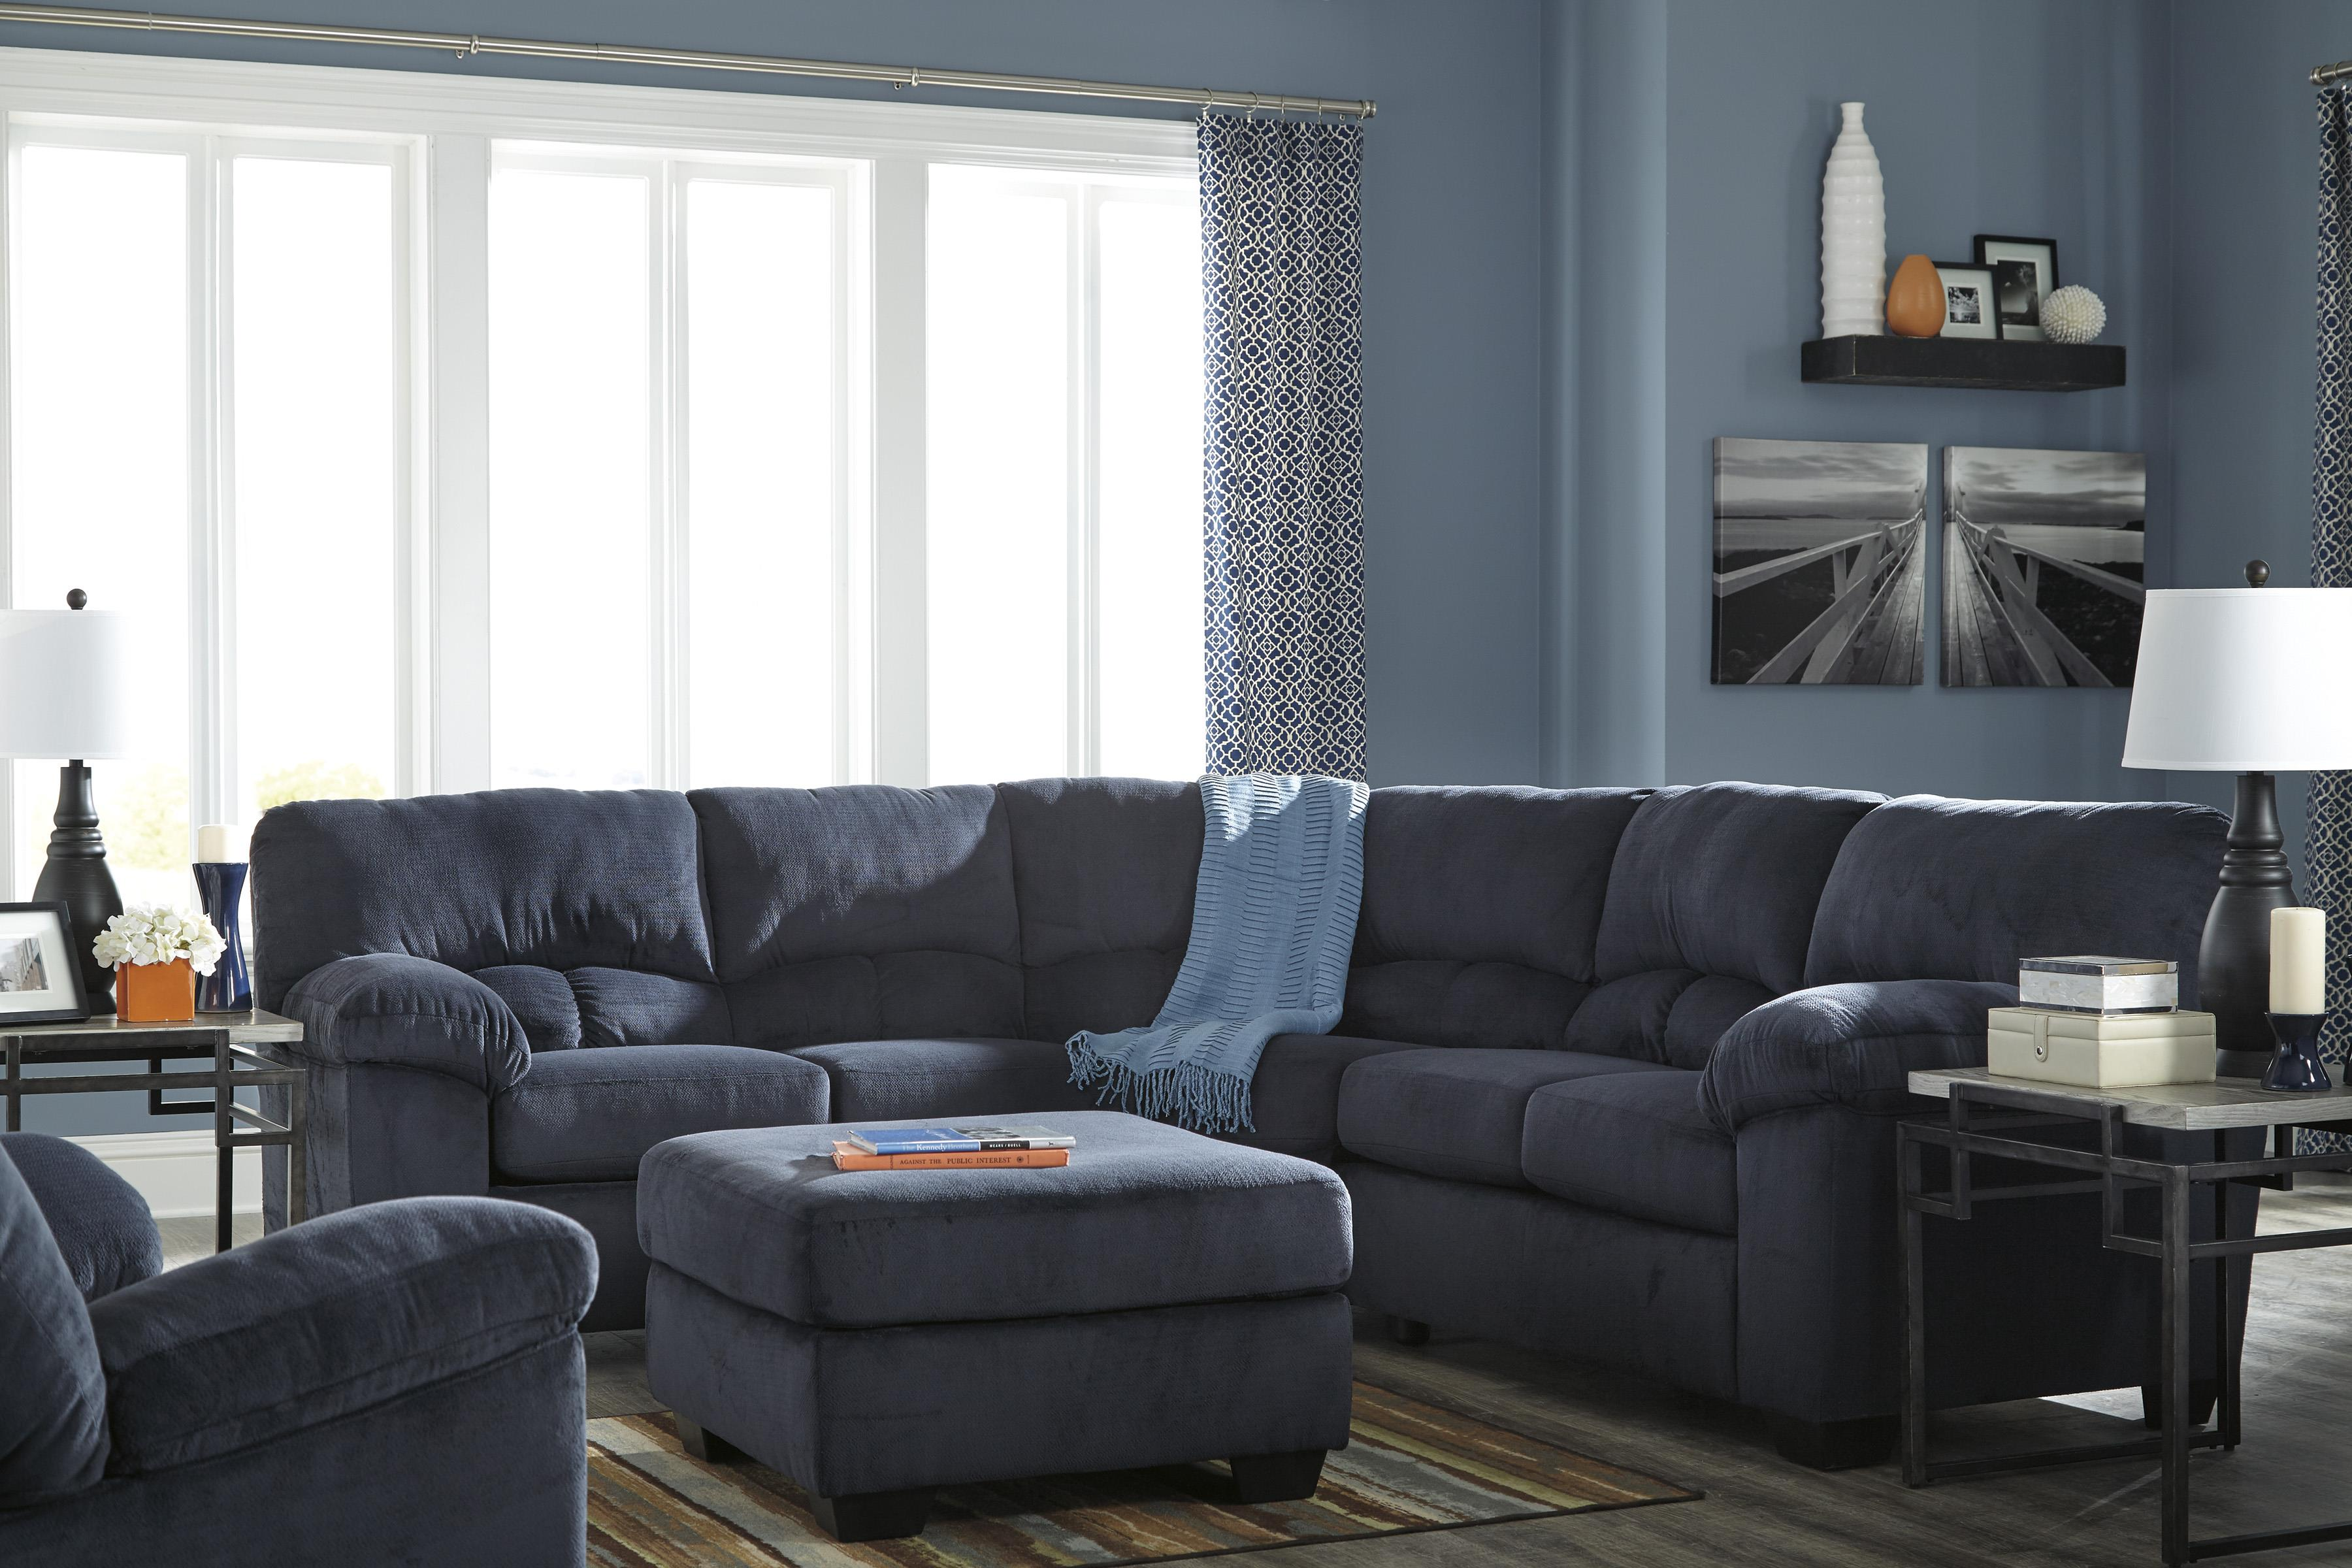 Signature Design by Ashley Dailey Stationary Living Room Group - Item Number: 95402 Living Room Group 5